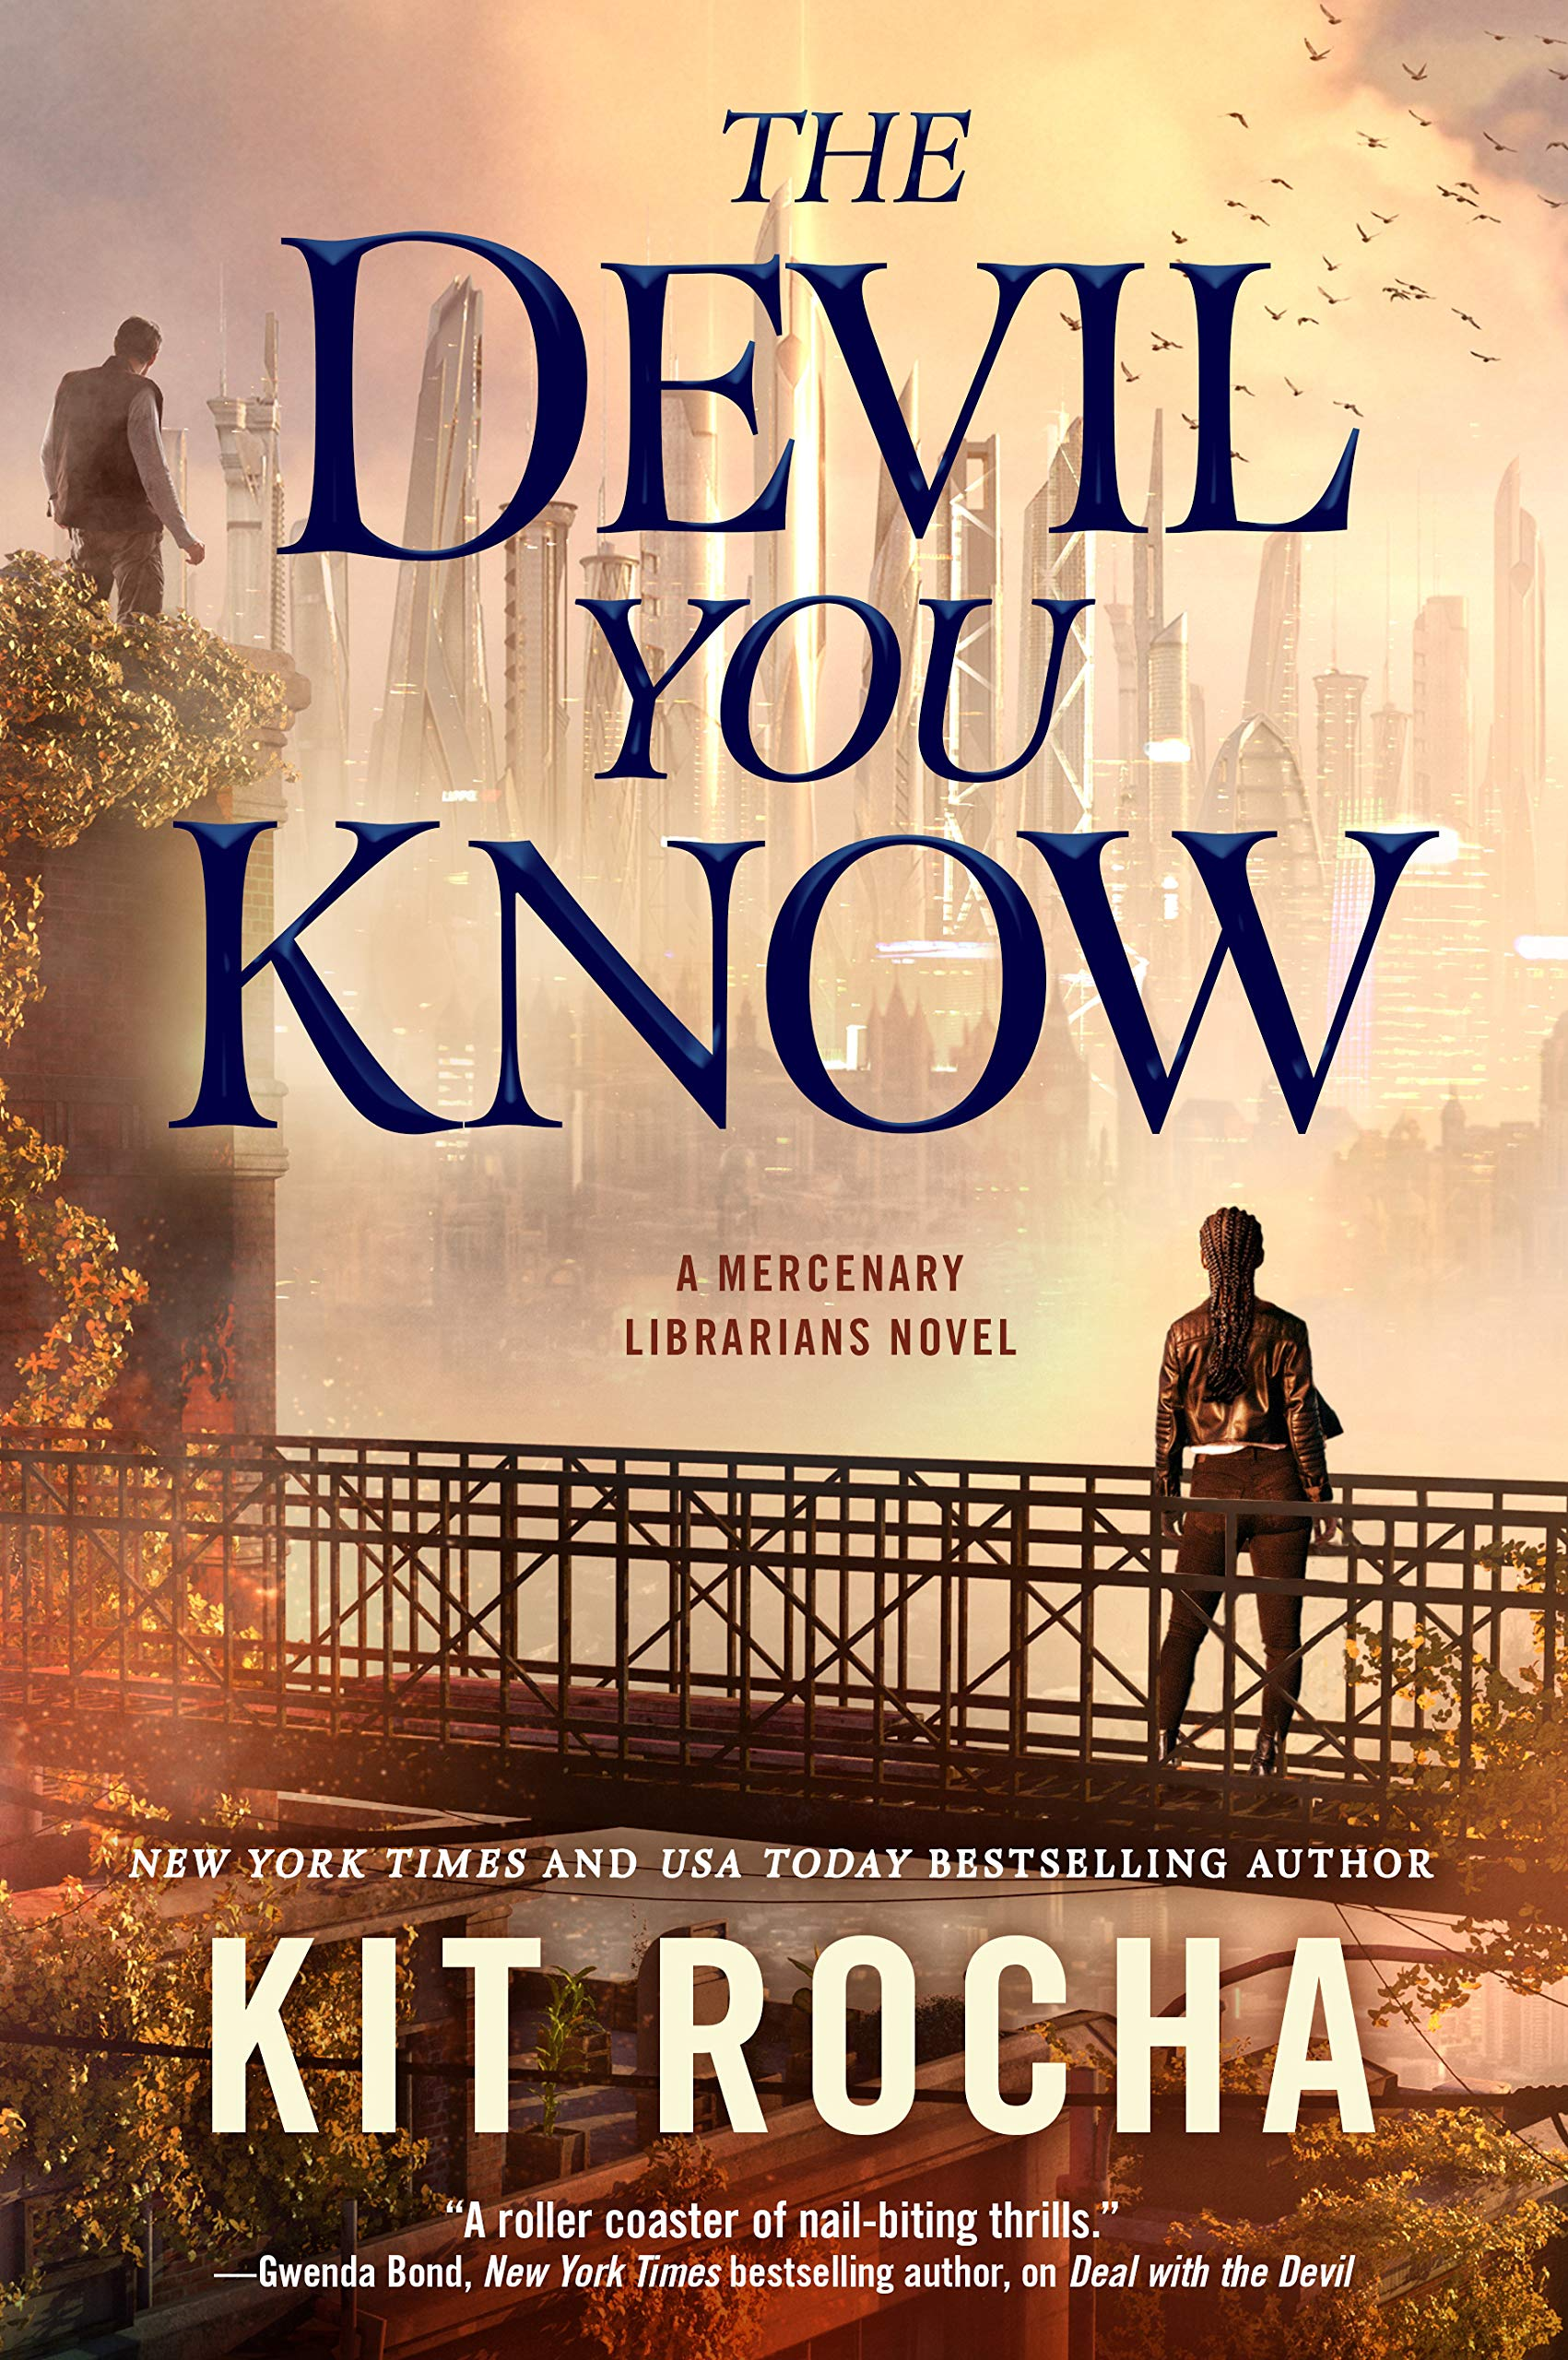 The Devil You Know by Kit Rocha – Tubby & Coo's Mid-City Book Shop